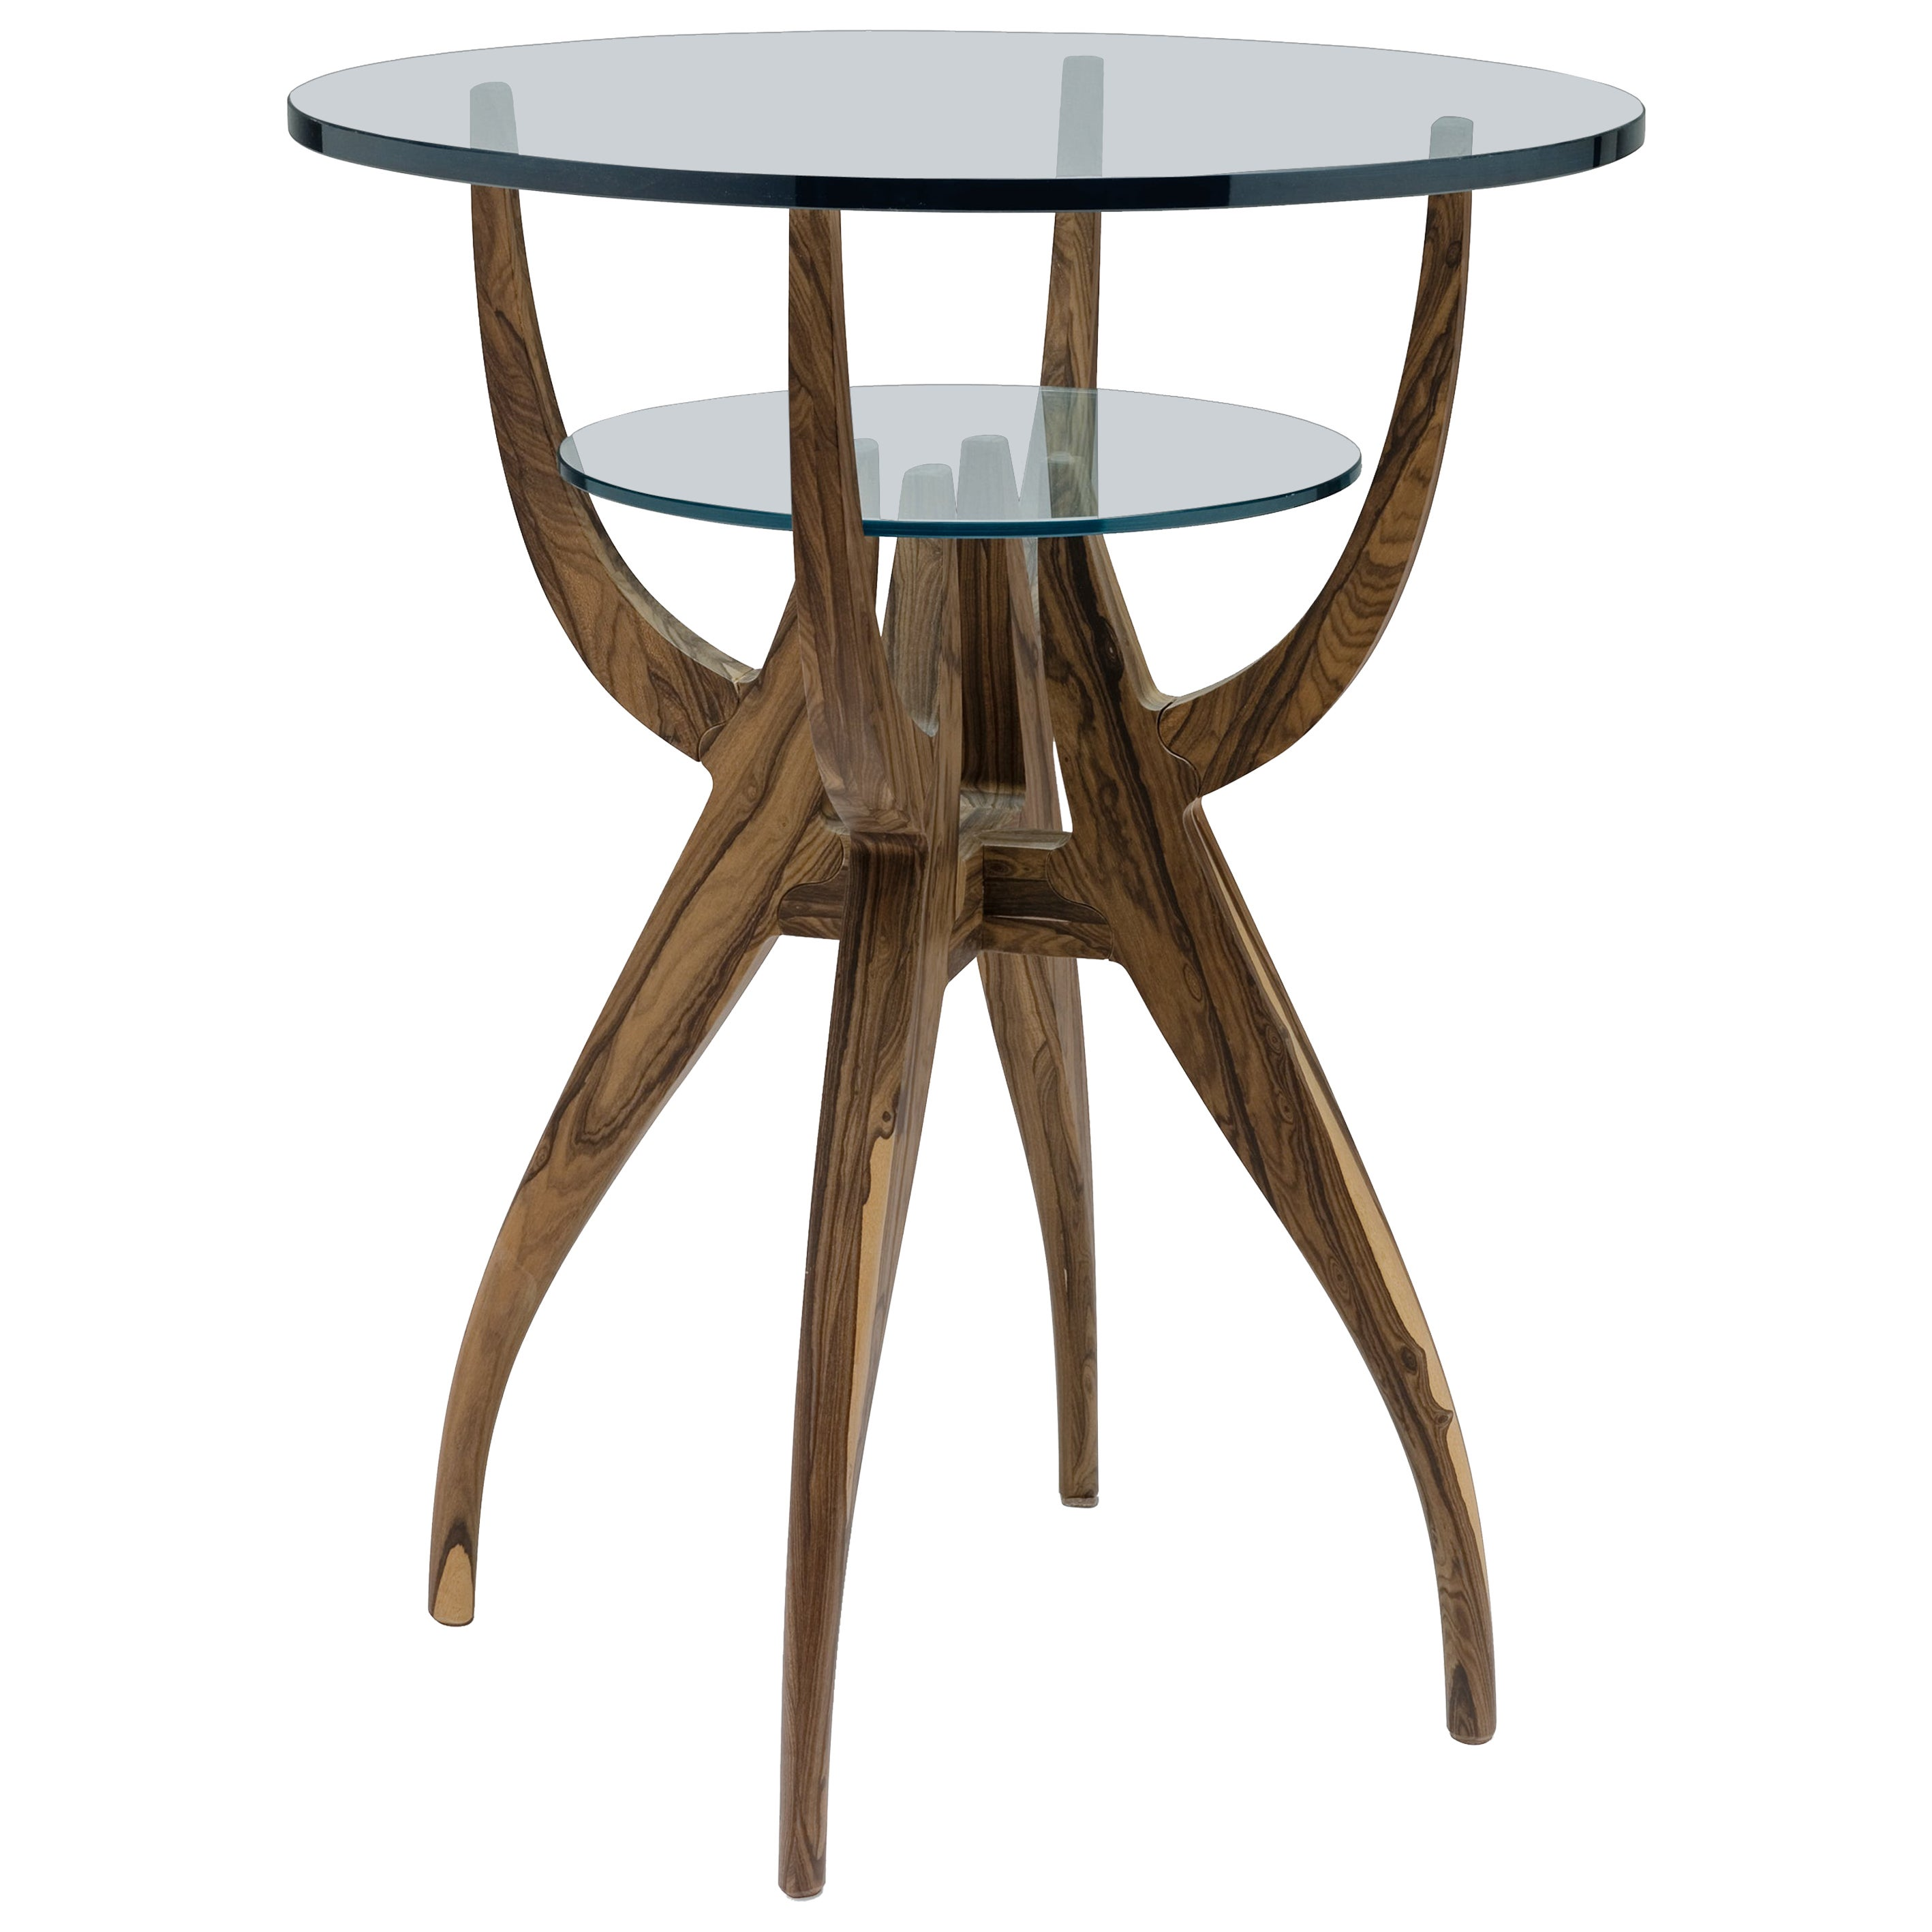 Stag/G small table in solid walnut with glass top